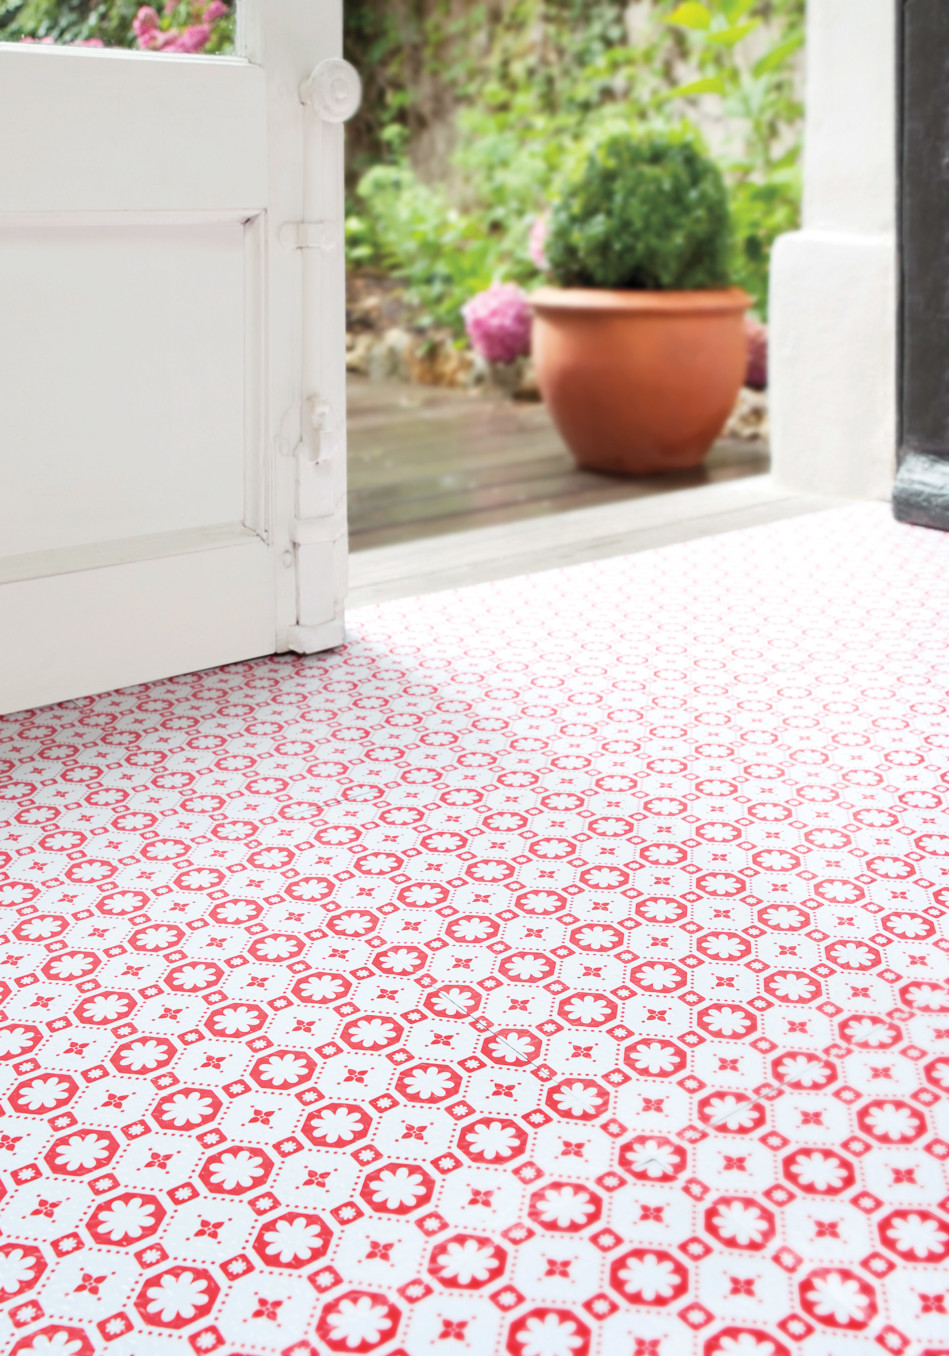 Ceramic Tile Floor Trend Domino Your Guide To A Stylish Home